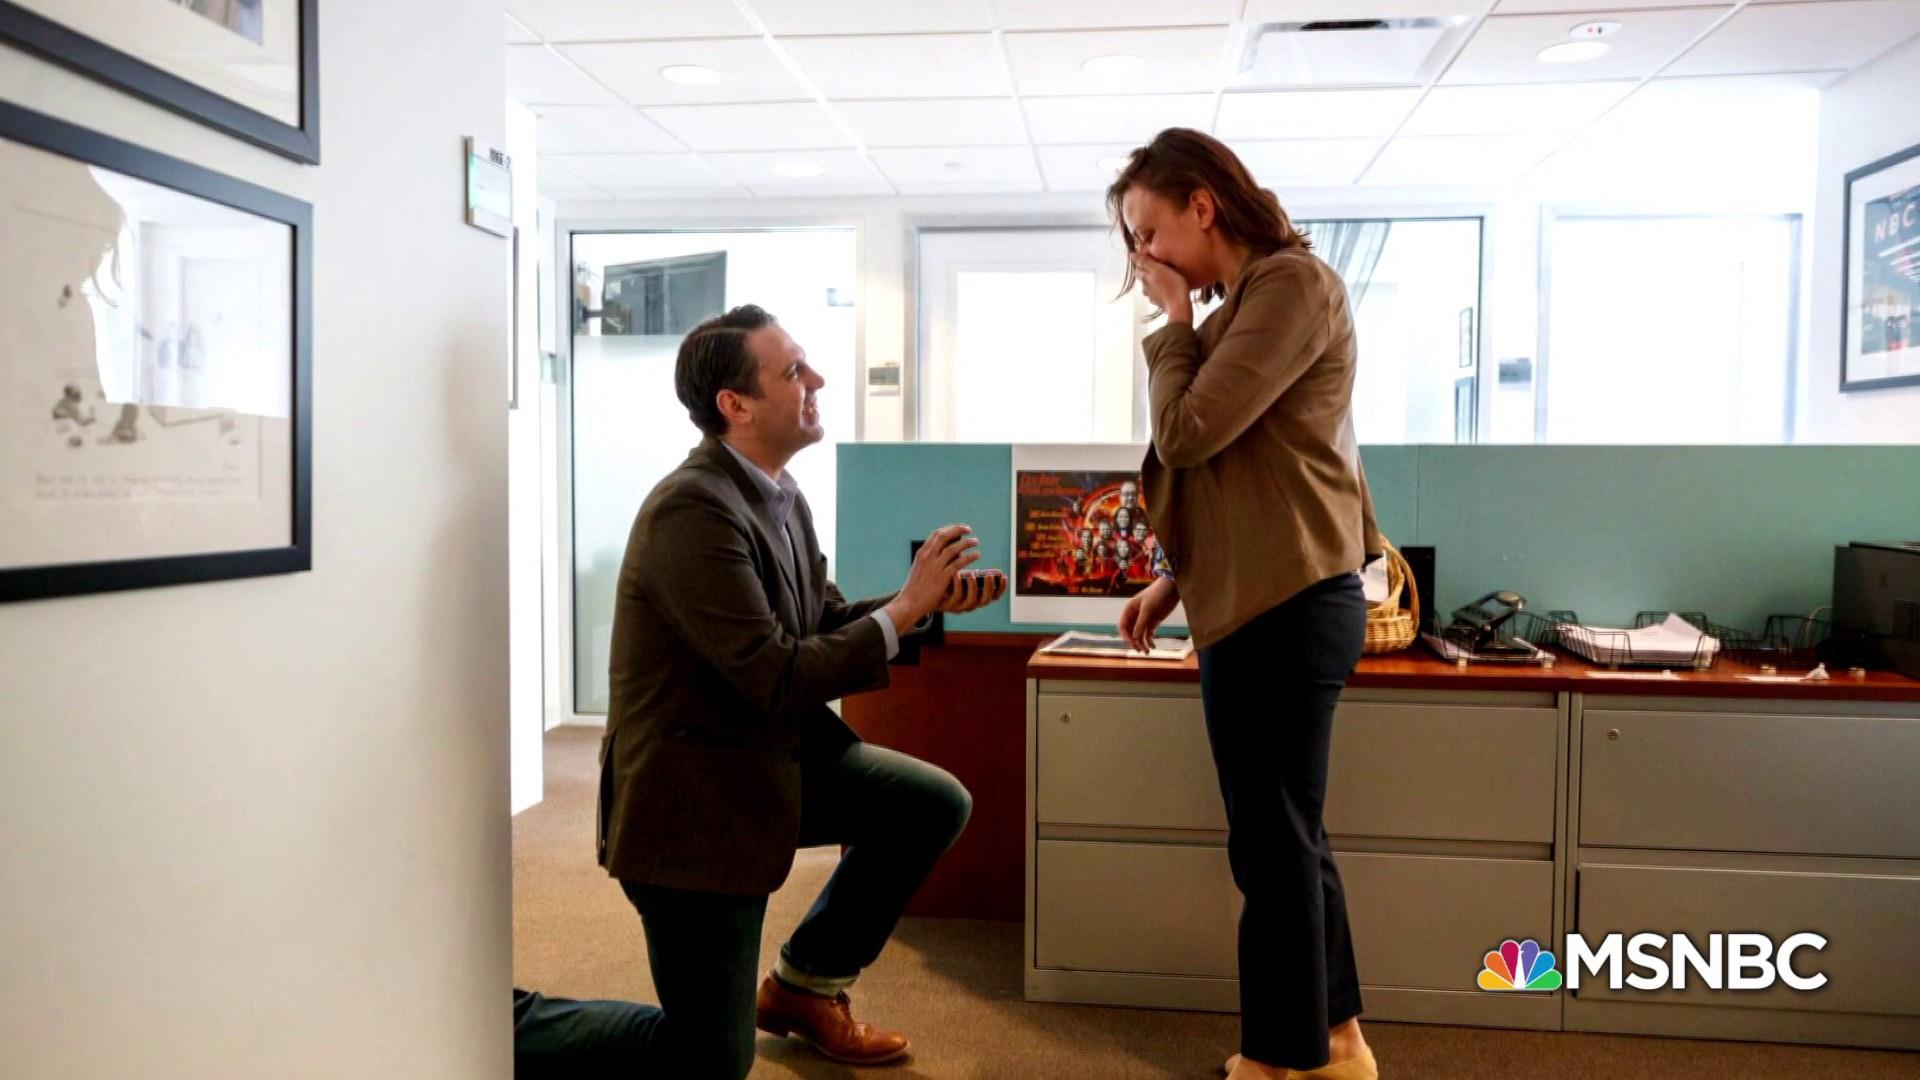 #BIGPICTURE: The BIG proposal